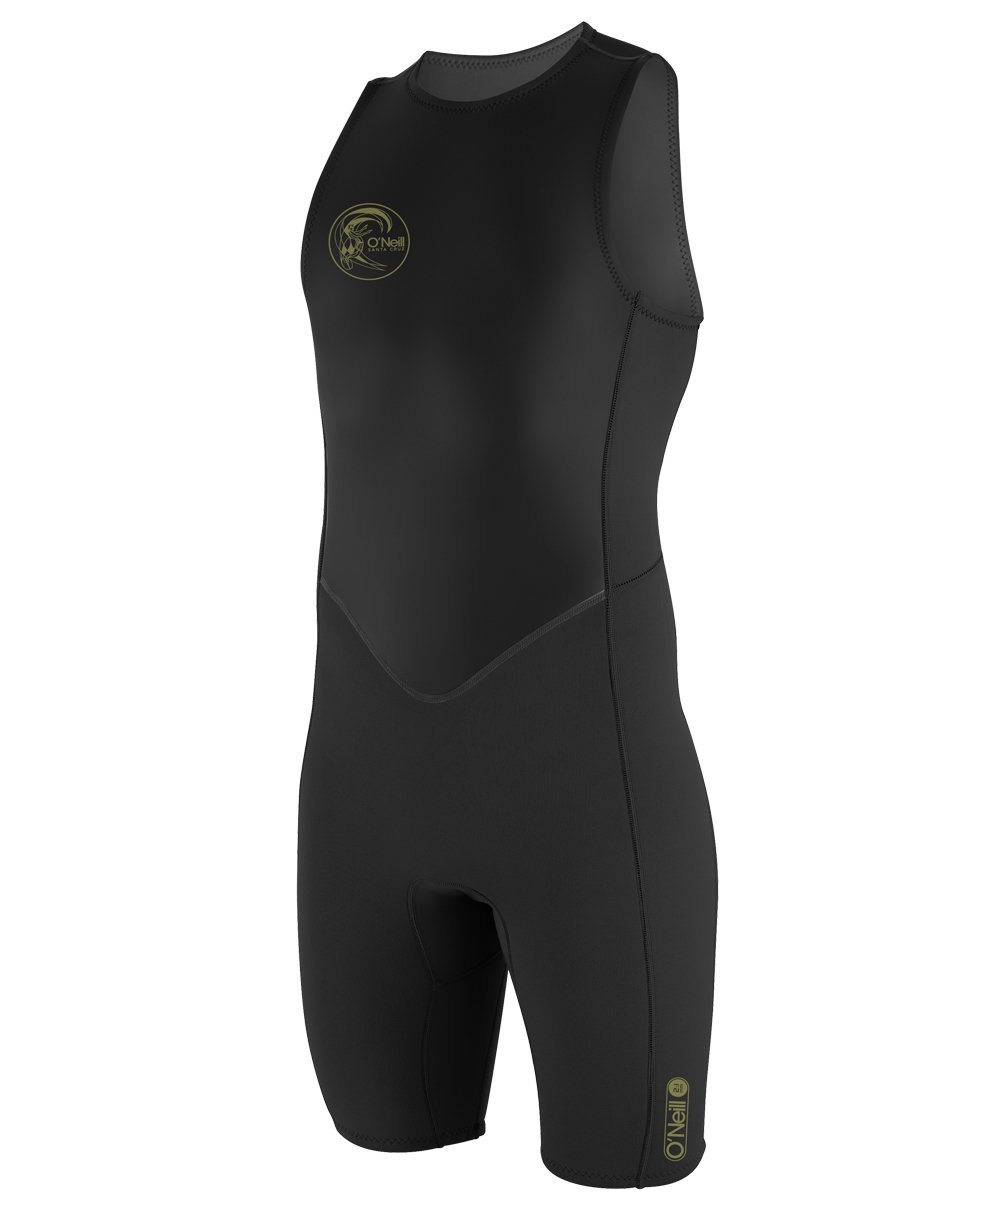 O'Neill Men's O'Riginal 2mm Back Zip Sleeveless Spring Wetsuit, Black, X-Large by O'Neill Wetsuits